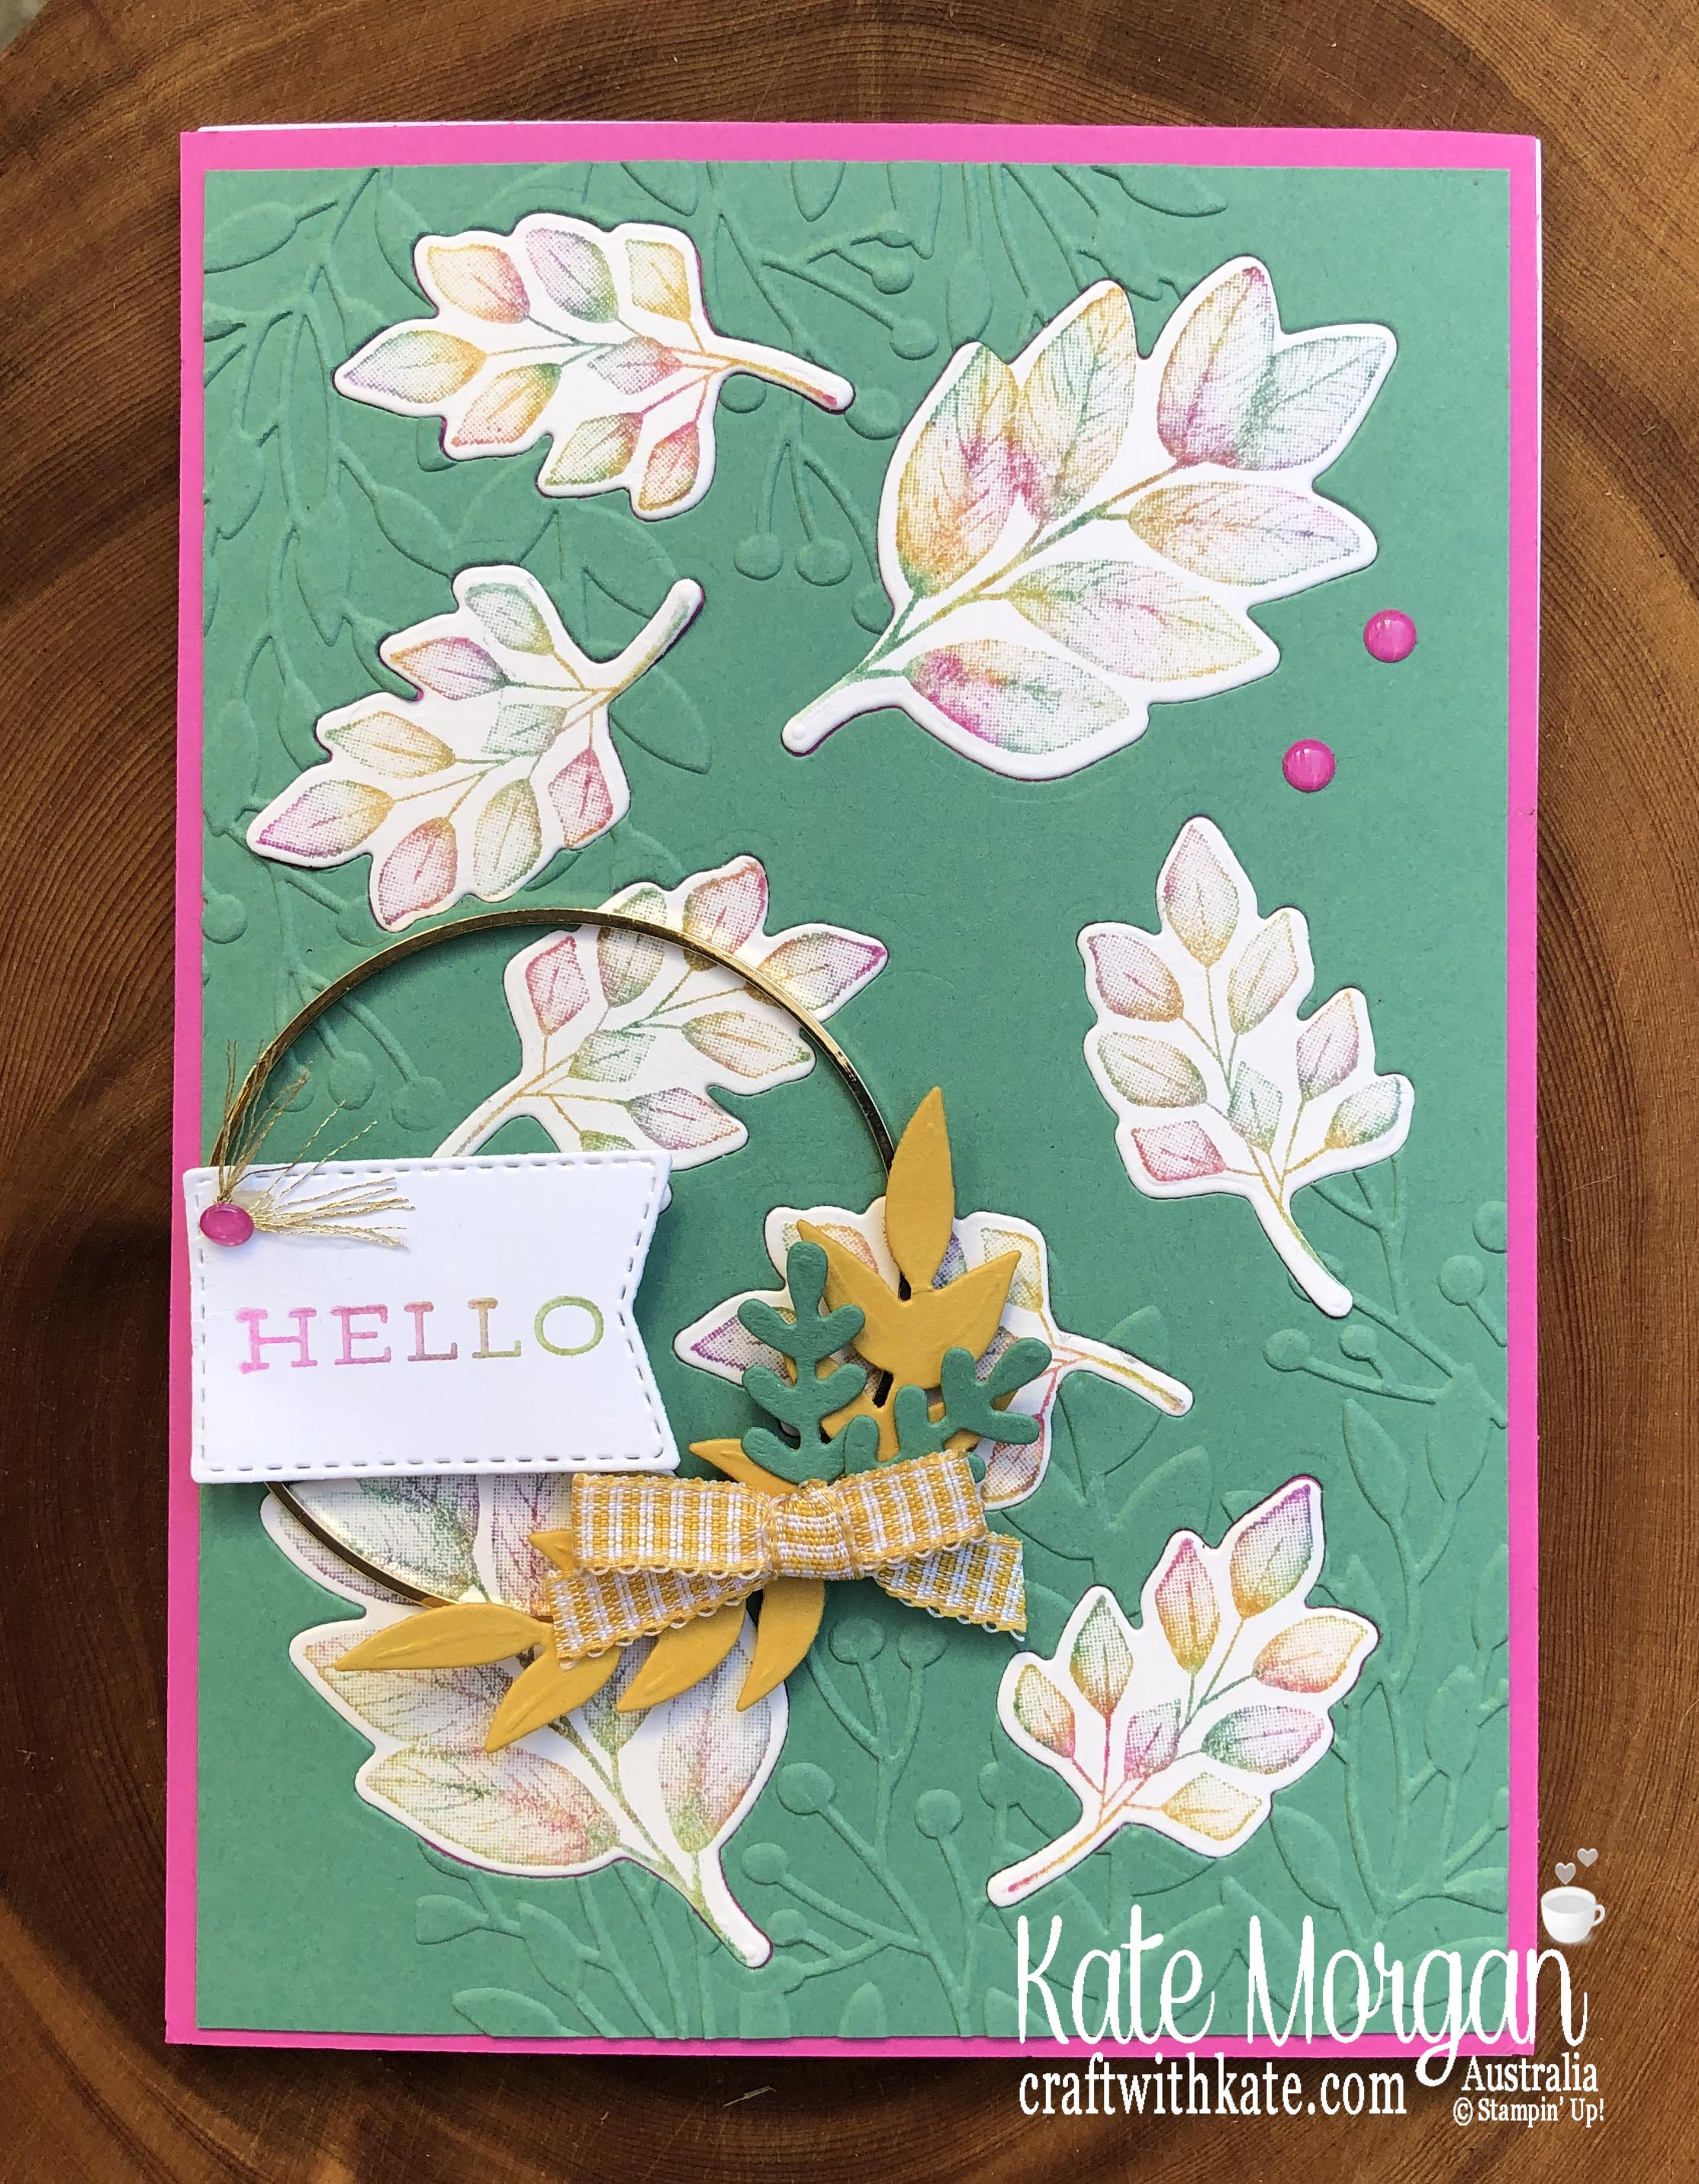 Baby wipe technique with Forever Fern bundle by Kate Morgan, Stampin Up Australia 2020 3